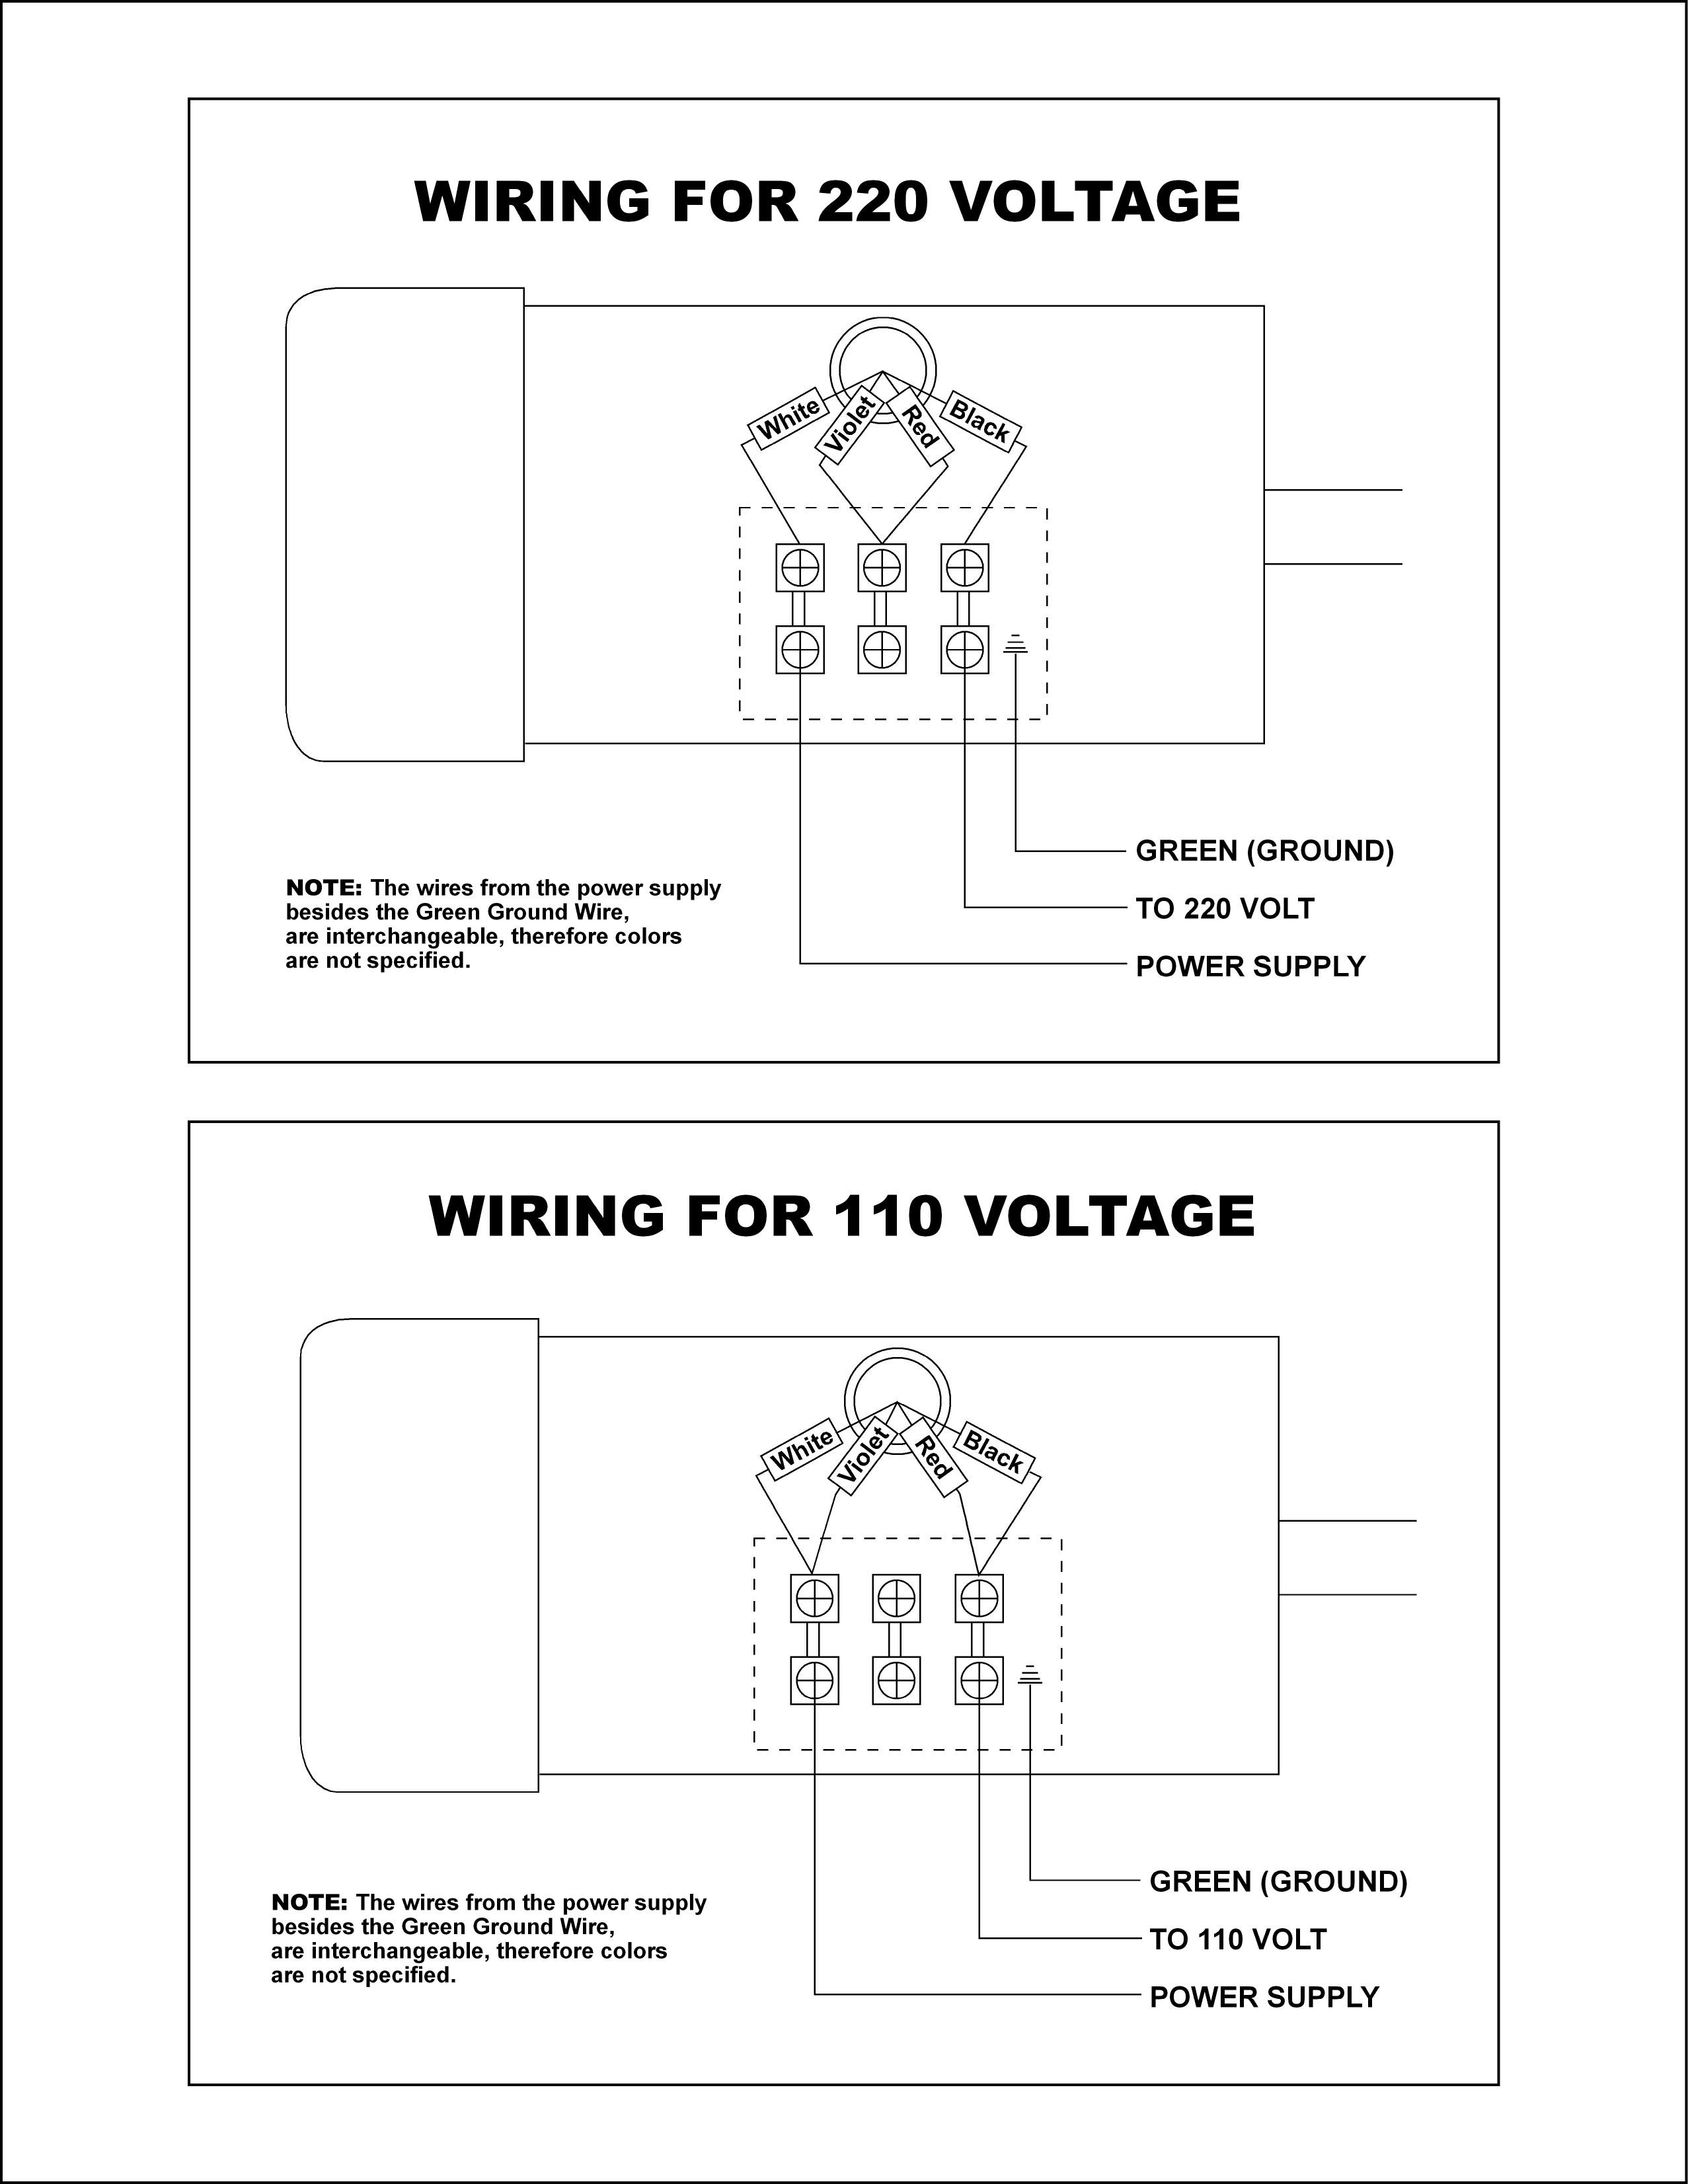 240 Single Phase Wiring Diagram - Wiring Library